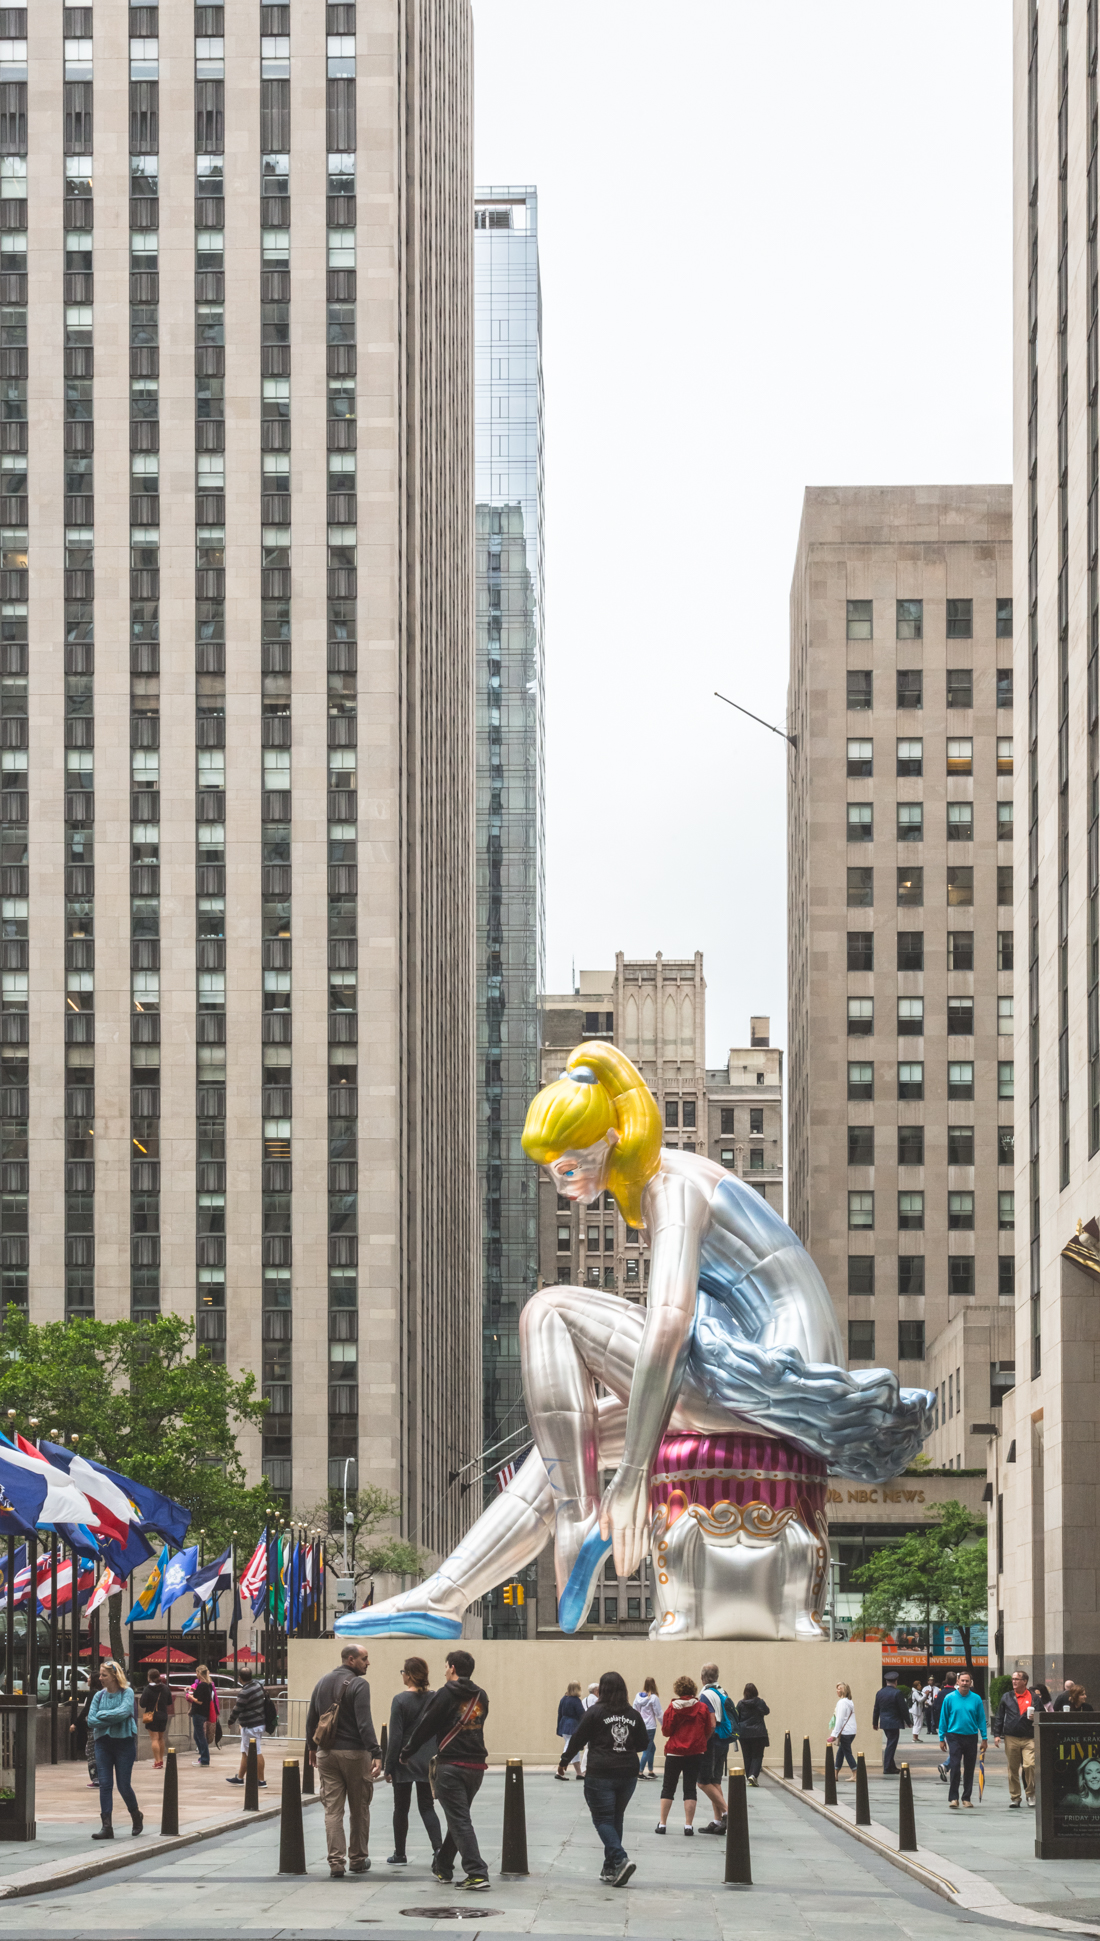 inflatable_ballerina_jeff_koons_rockefeller_center_new_york_copyright_Pauline_Privez_paulinefashionblog_com-2